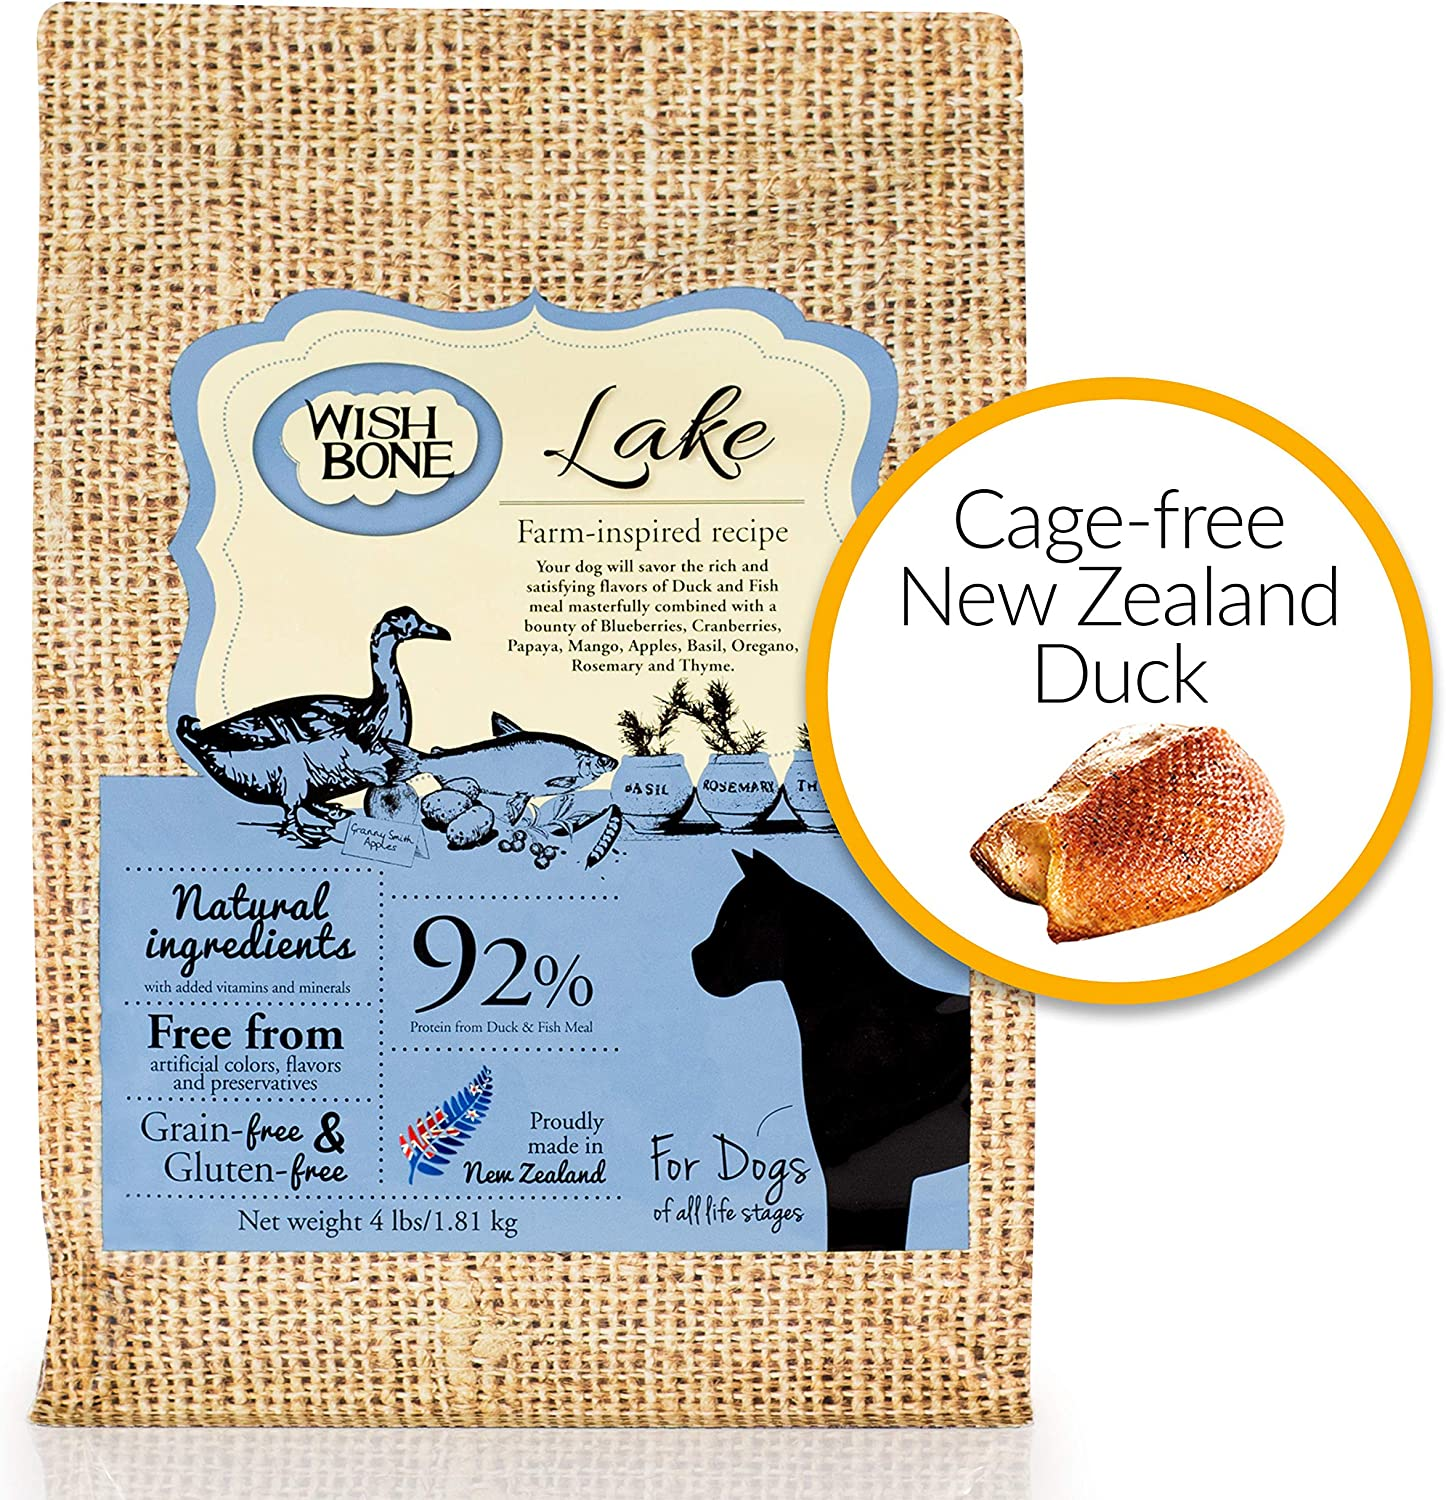 Wishbone Lake Grain-Free and Gluten-Free Dog Food, Made from New Zealand Duck Dry Dof Food, All Natural Dog Food, High Protein Dry Dog food, For all Dog life stages